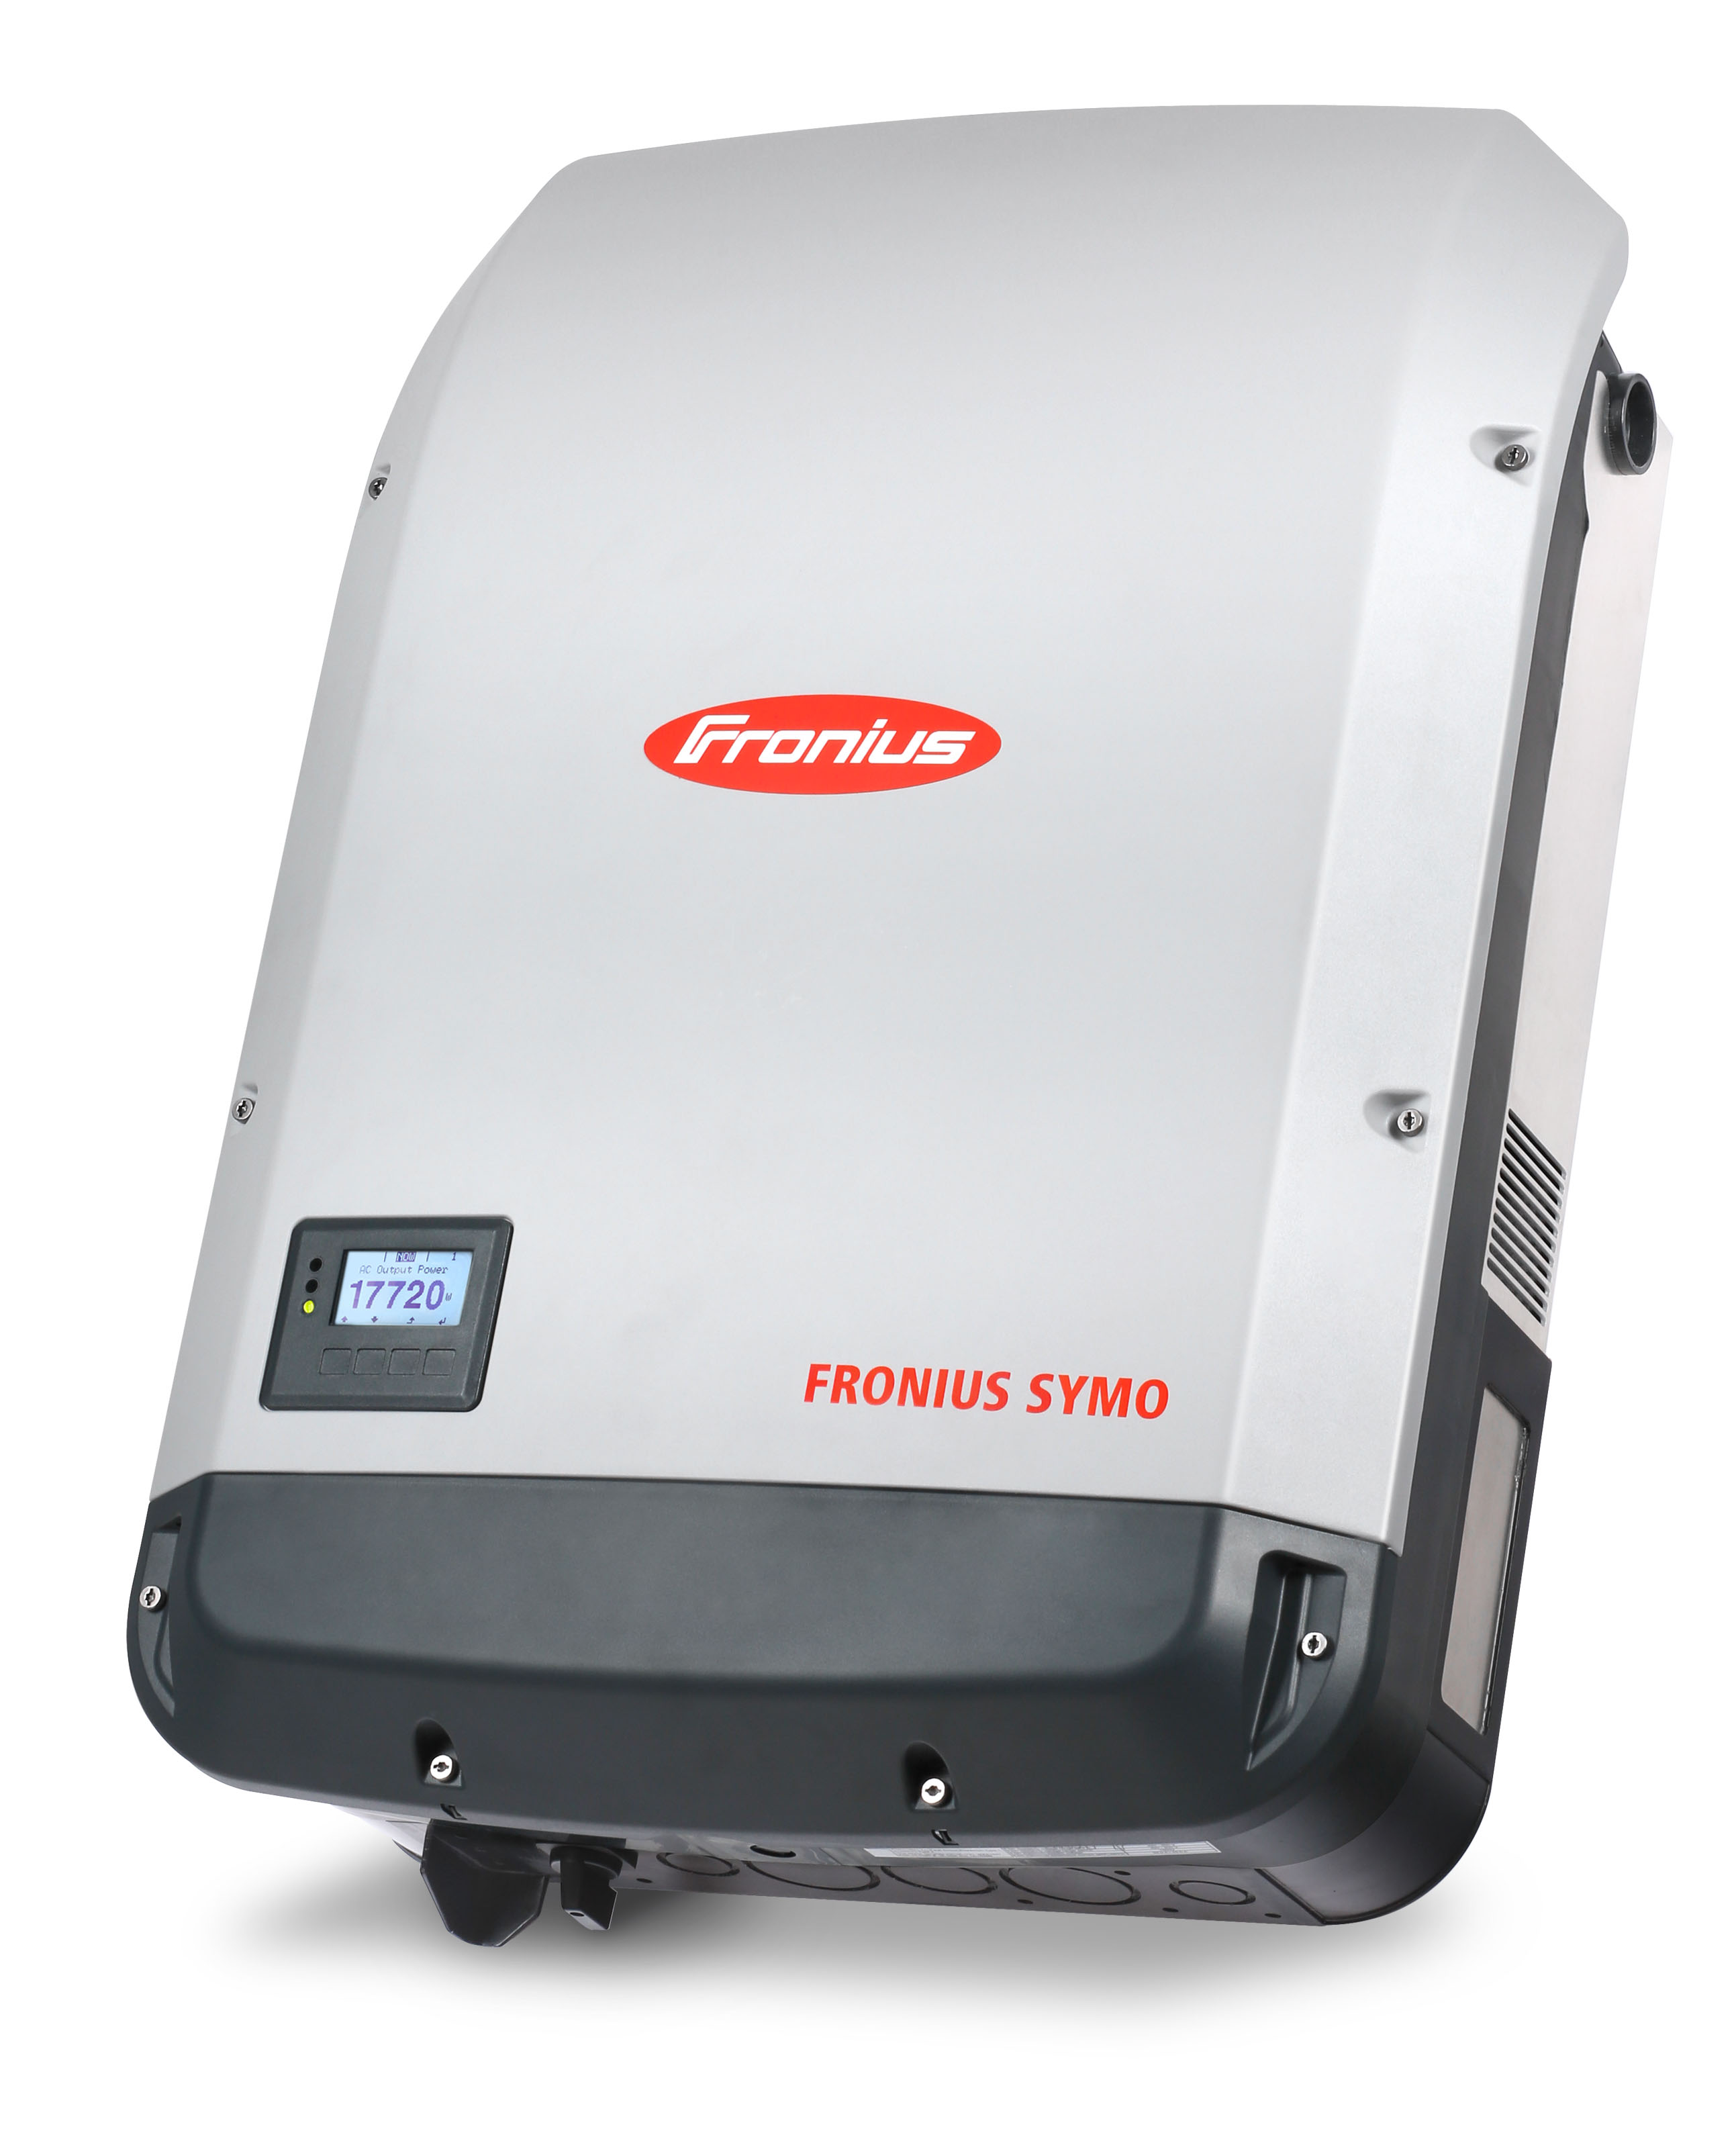 FRONIUS, SYMO 22.7-3 480, NON-ISOLATED STRING INVERTER, 10 KW, 480 VAC, LITE - NO DATAMANAGER 2.0 CARD